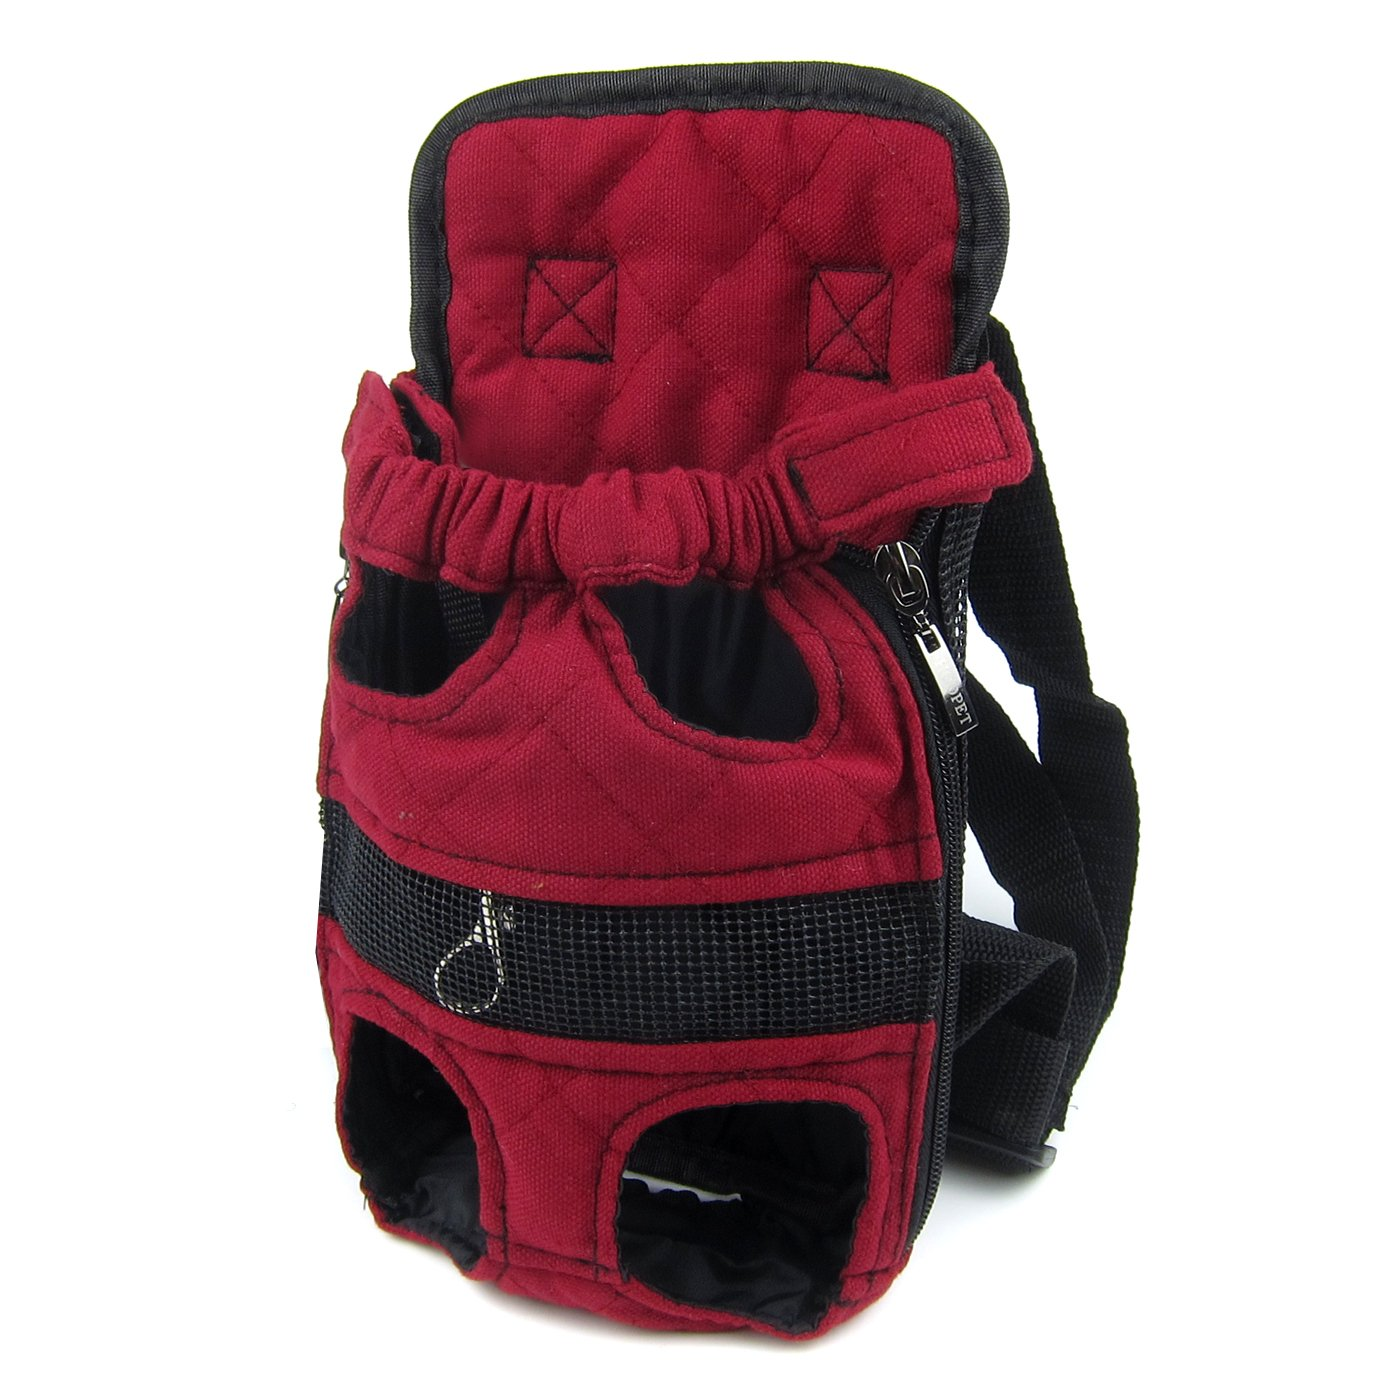 Alfie Pet by Petoga Couture - Jaden Pet Backpack or Front Carrier with Adjustable Strap - Color: Red, Size: Small